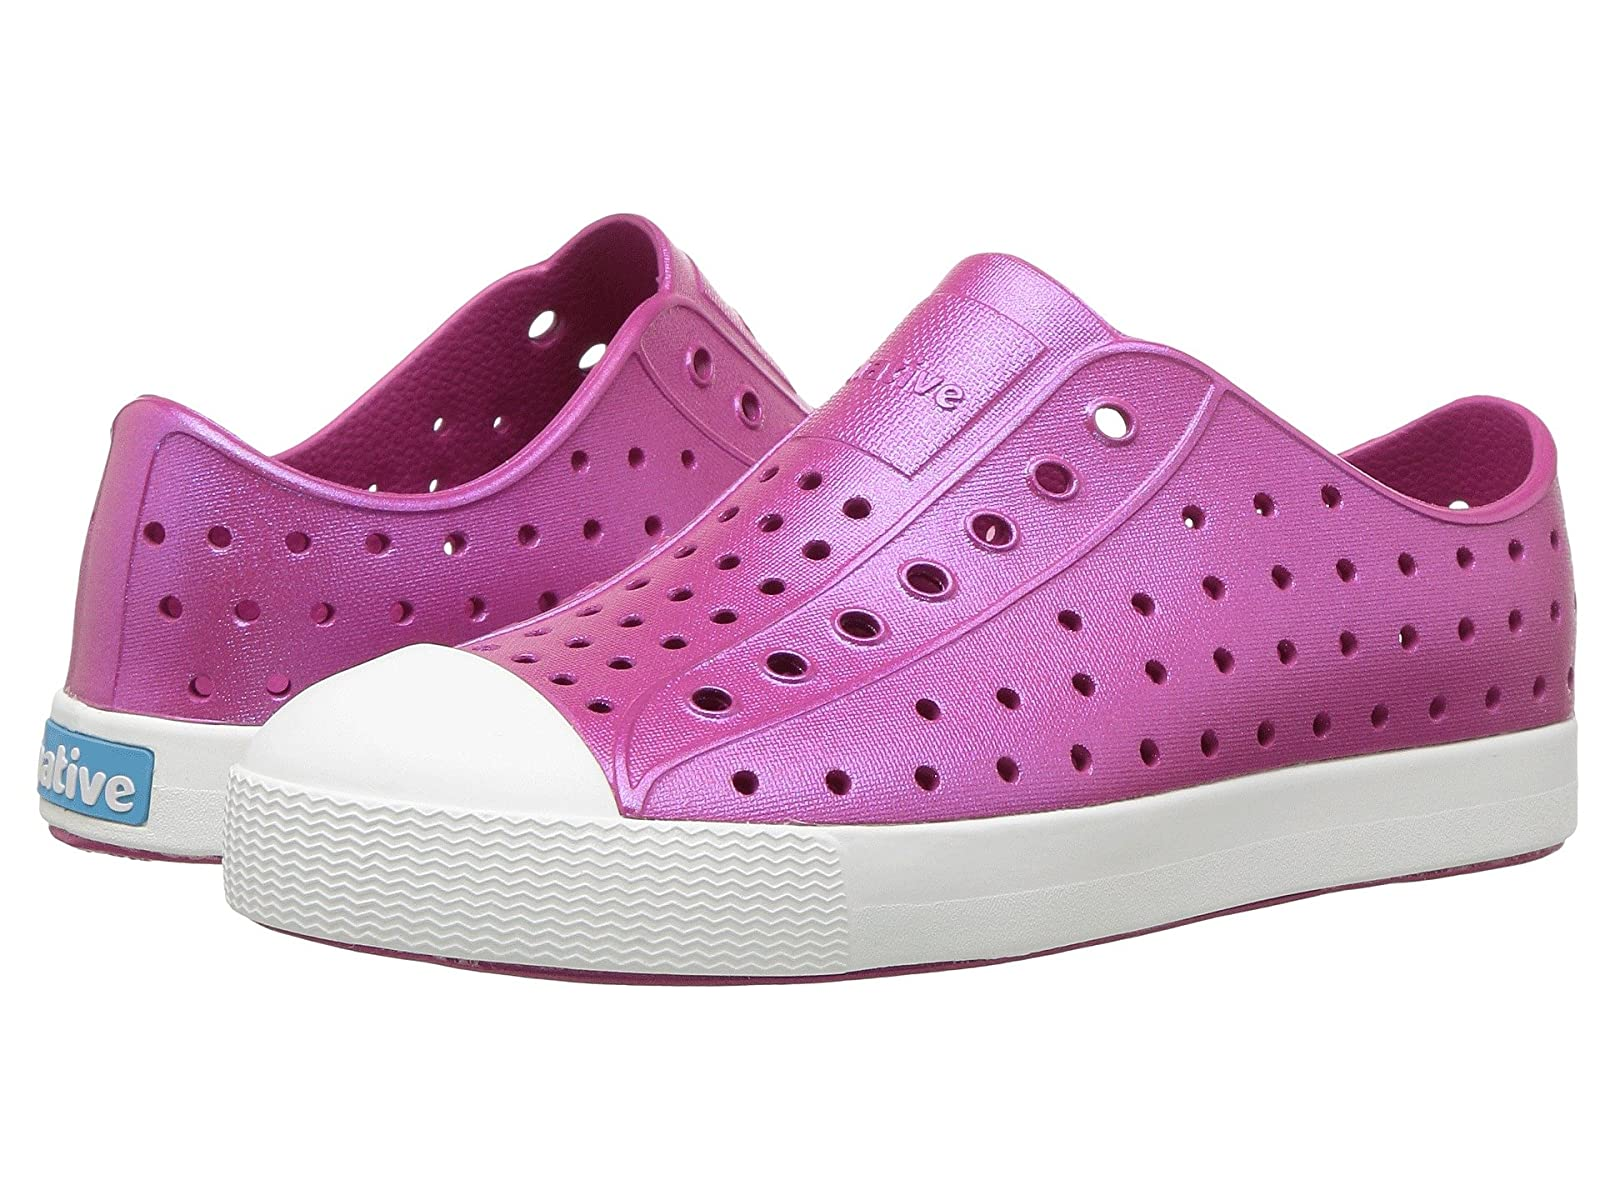 Native Kids Shoes Jefferson Iridescent (Little Kid)Atmospheric grades have affordable shoes